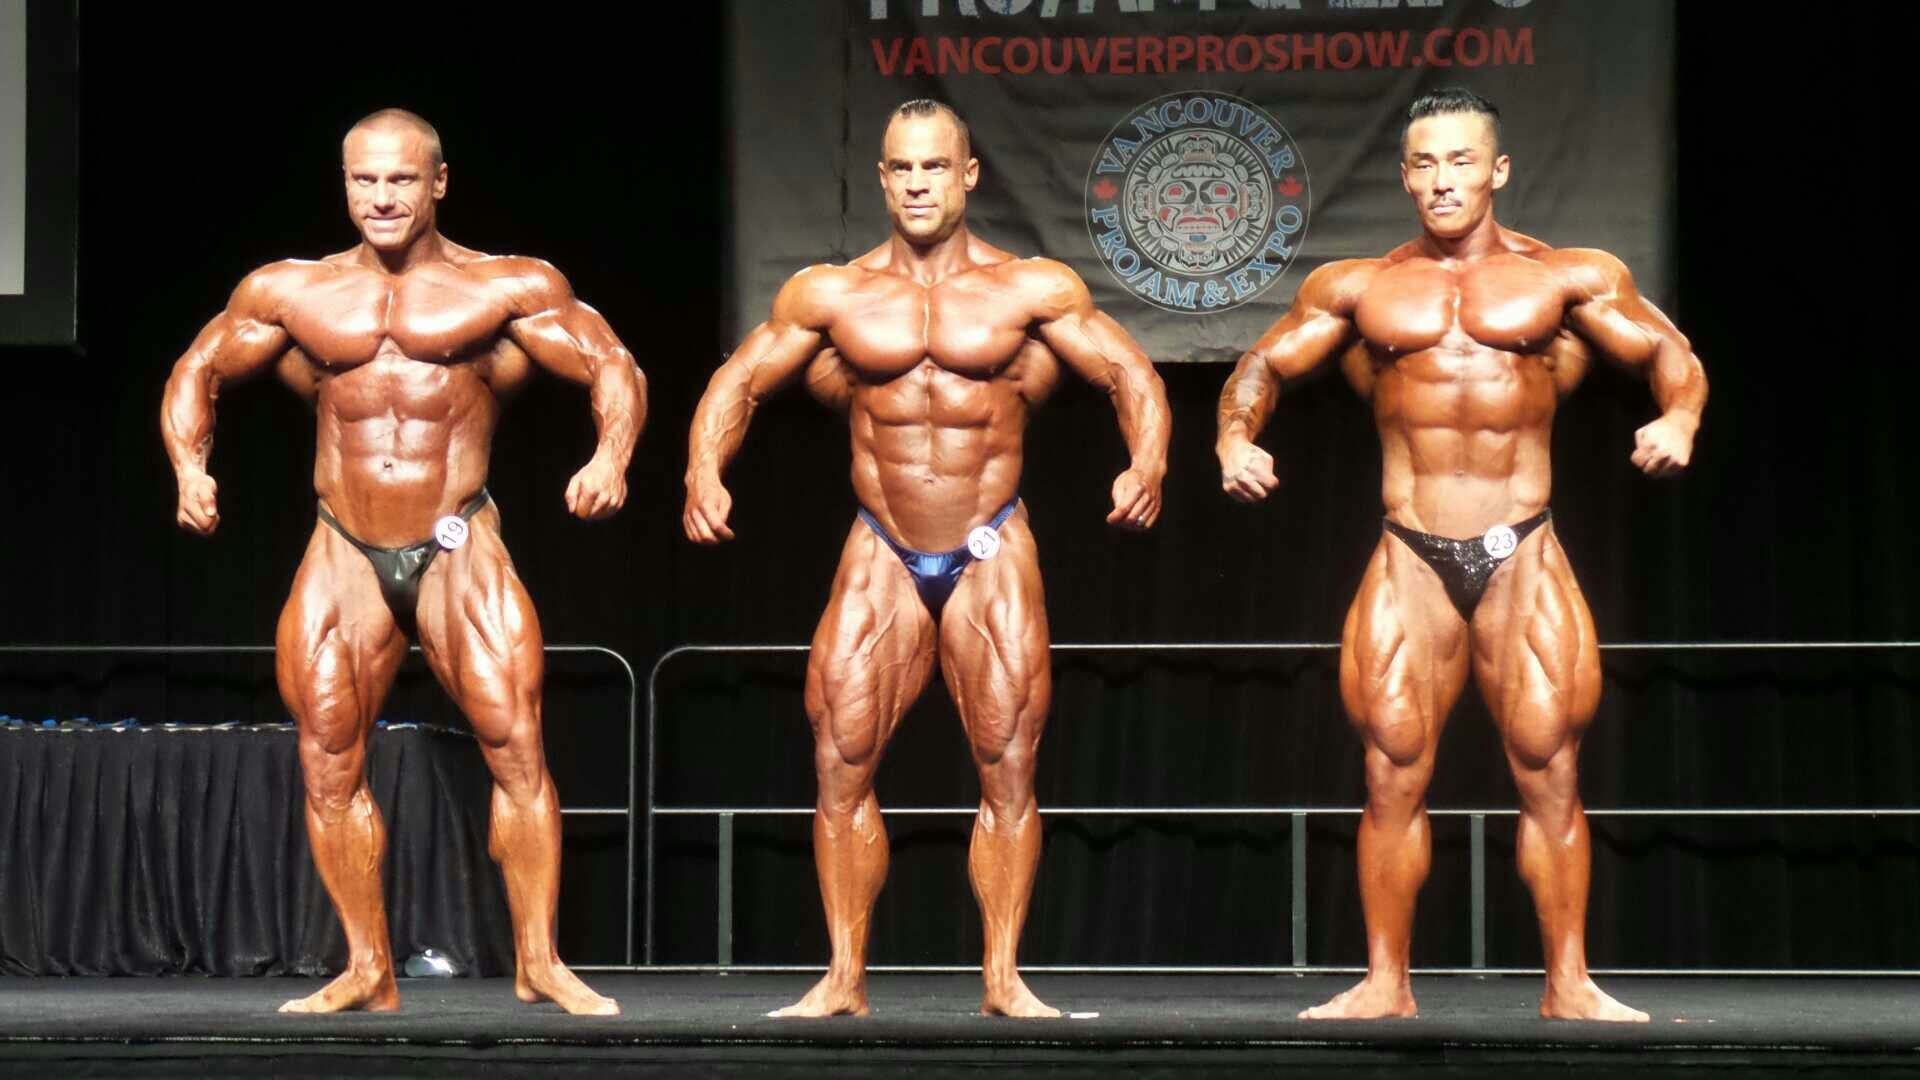 Mark Dugdale Wins The 212 Class In Vancouver Evolution Of Bodybuilding